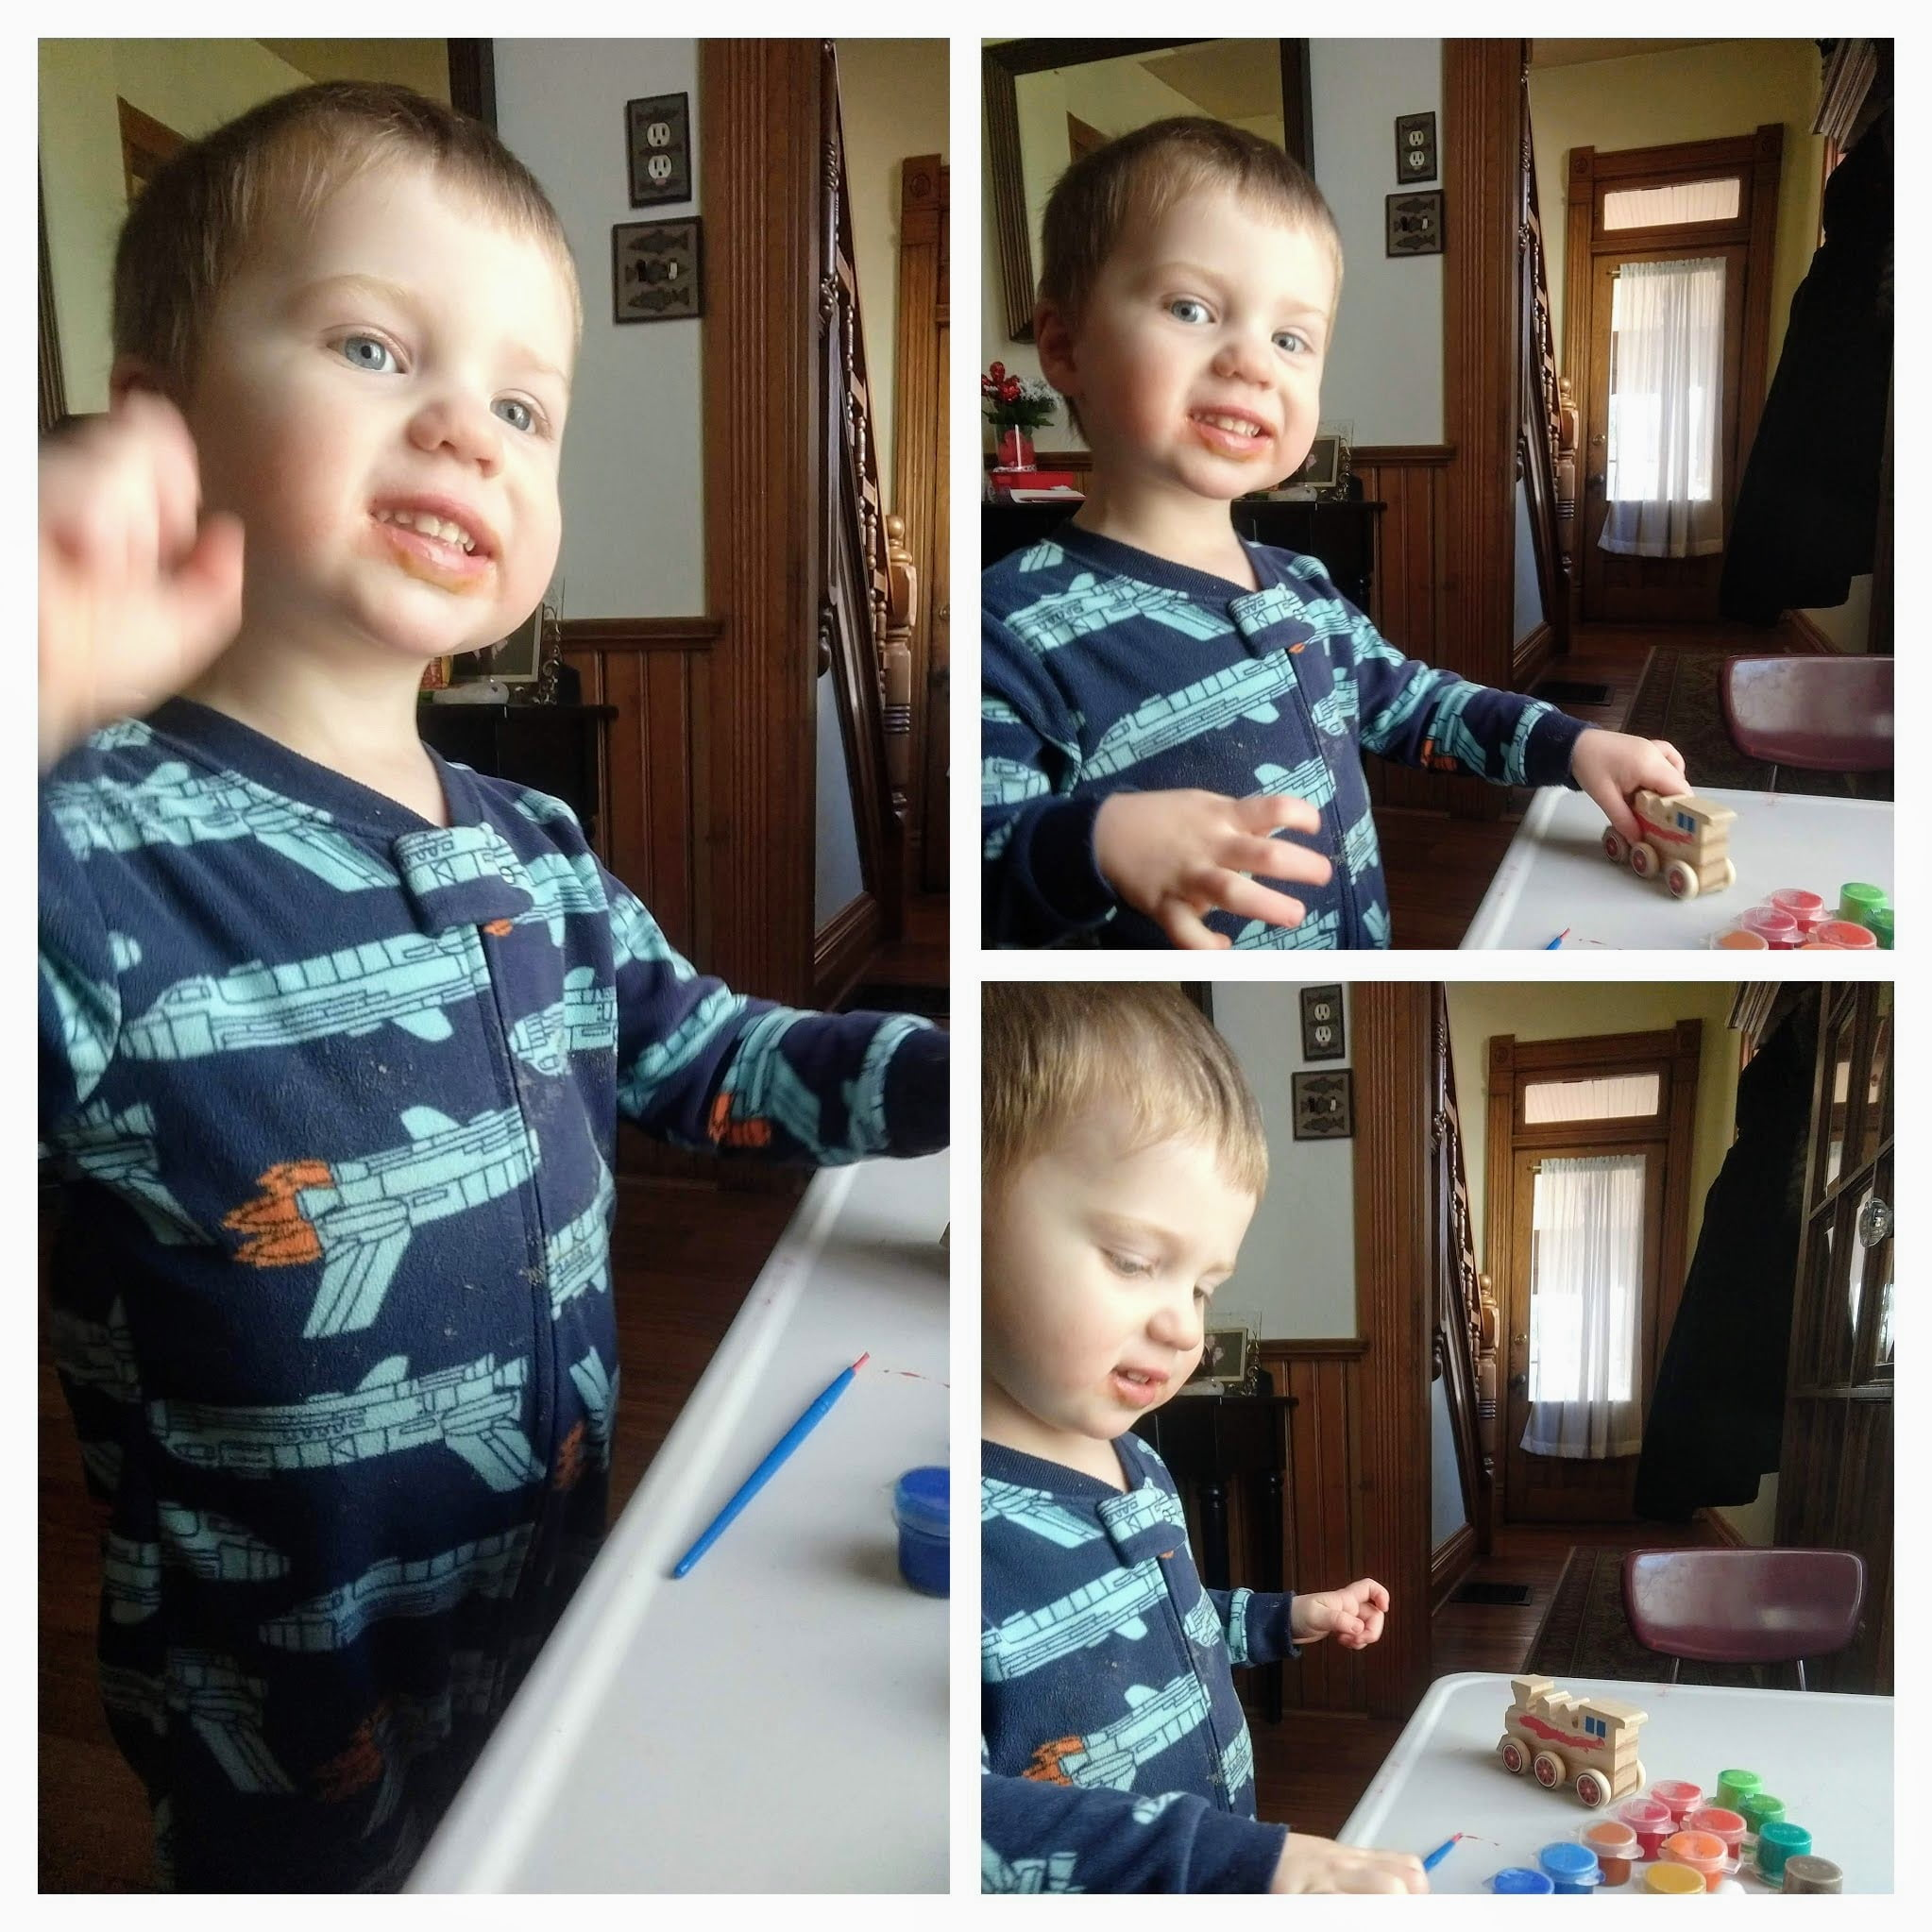 toddler working on arts and crafts